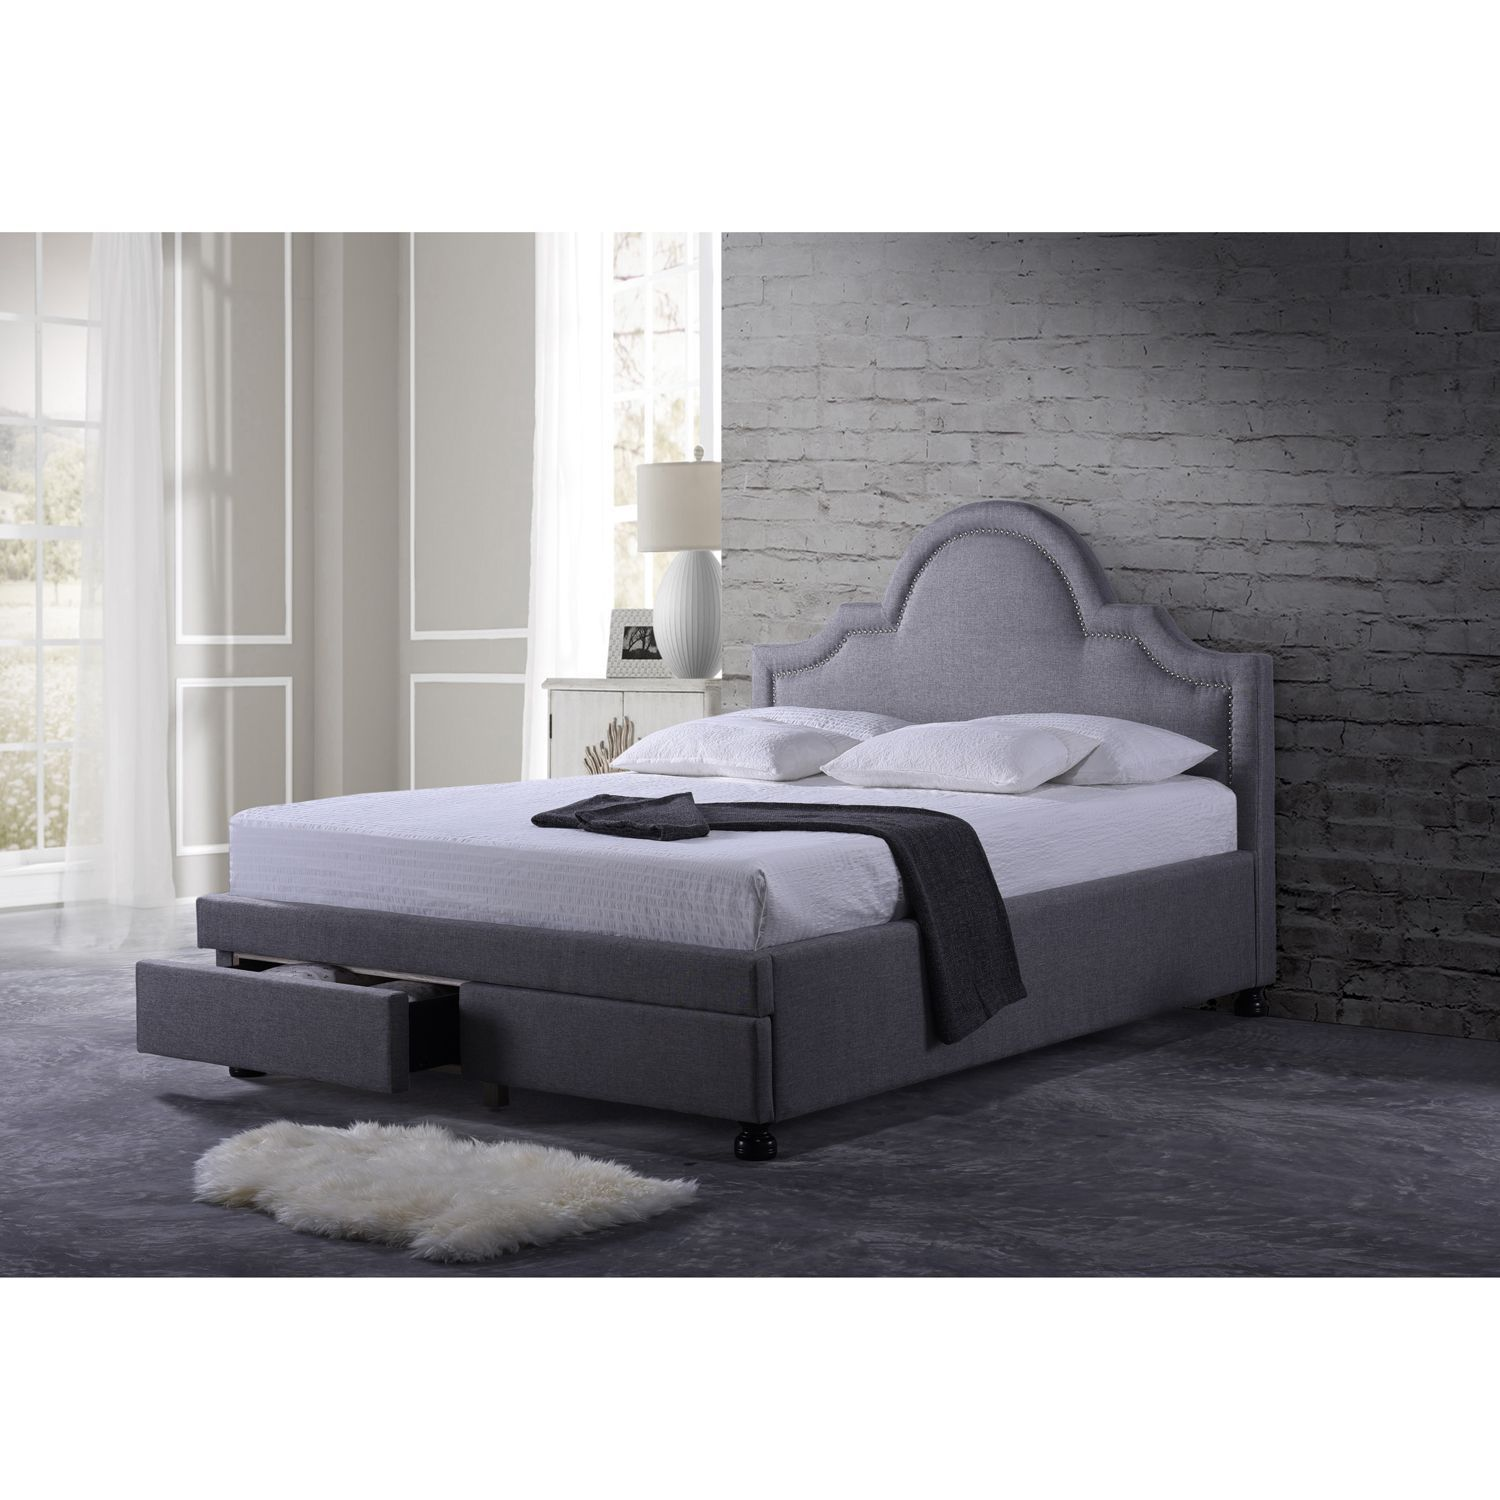 baxton studio vennum grey fabric upholstered storage platform bed with nail head trim house. Black Bedroom Furniture Sets. Home Design Ideas